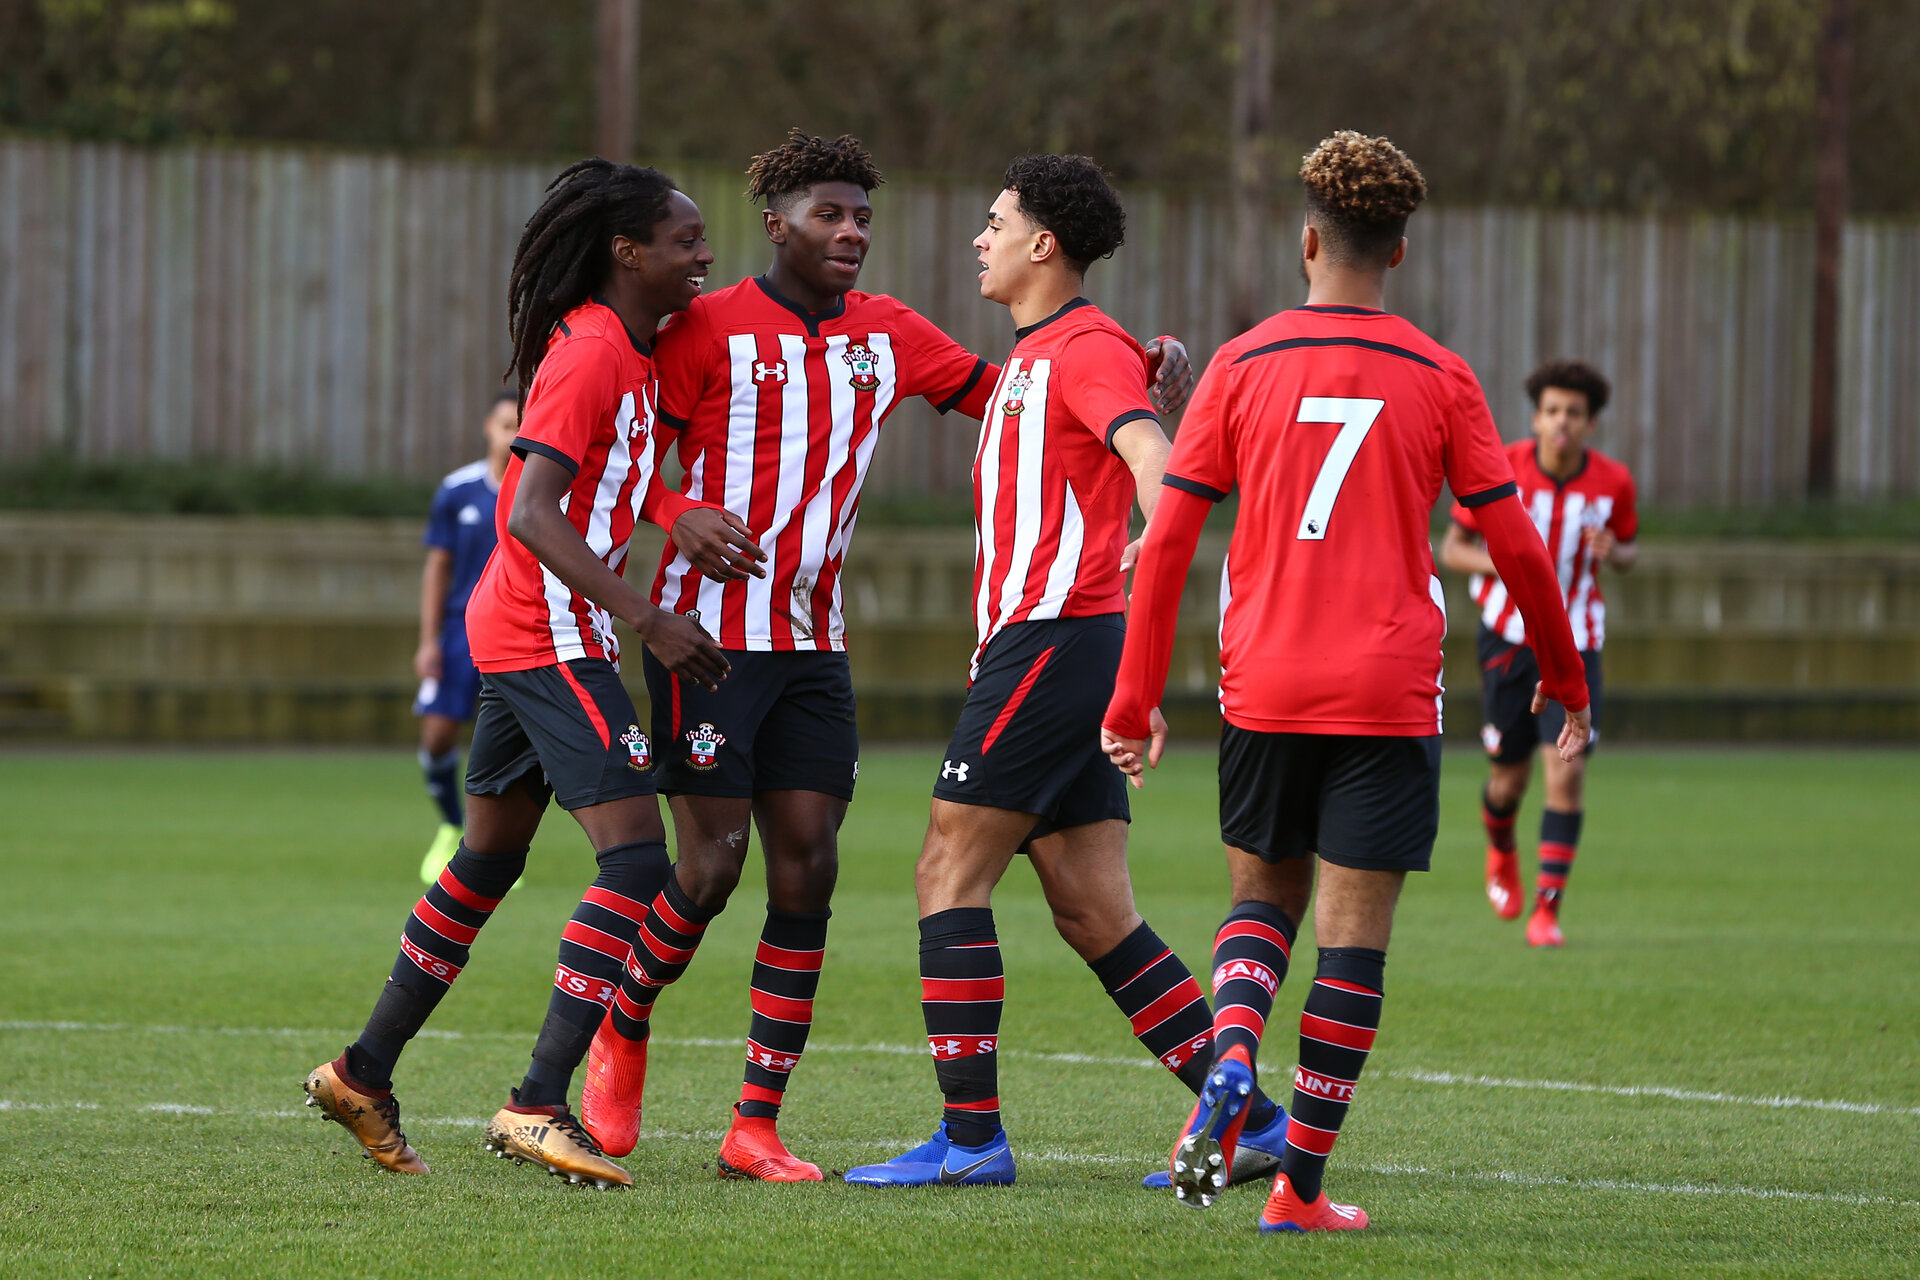 SOUTHAMPTON, ENGLAND - JANUARY 26: LtoR Taymar Fleary, Alex Jankewitz, Christian Norton, celebrates after Chris scores from a header during the Under 18s match between Southampton FC and Fulham FC pictured at Staplewood Complex on January 26, 2019 in Southampton, England. (Photo by James Bridle - Southampton FC/Southampton FC via Getty Images)